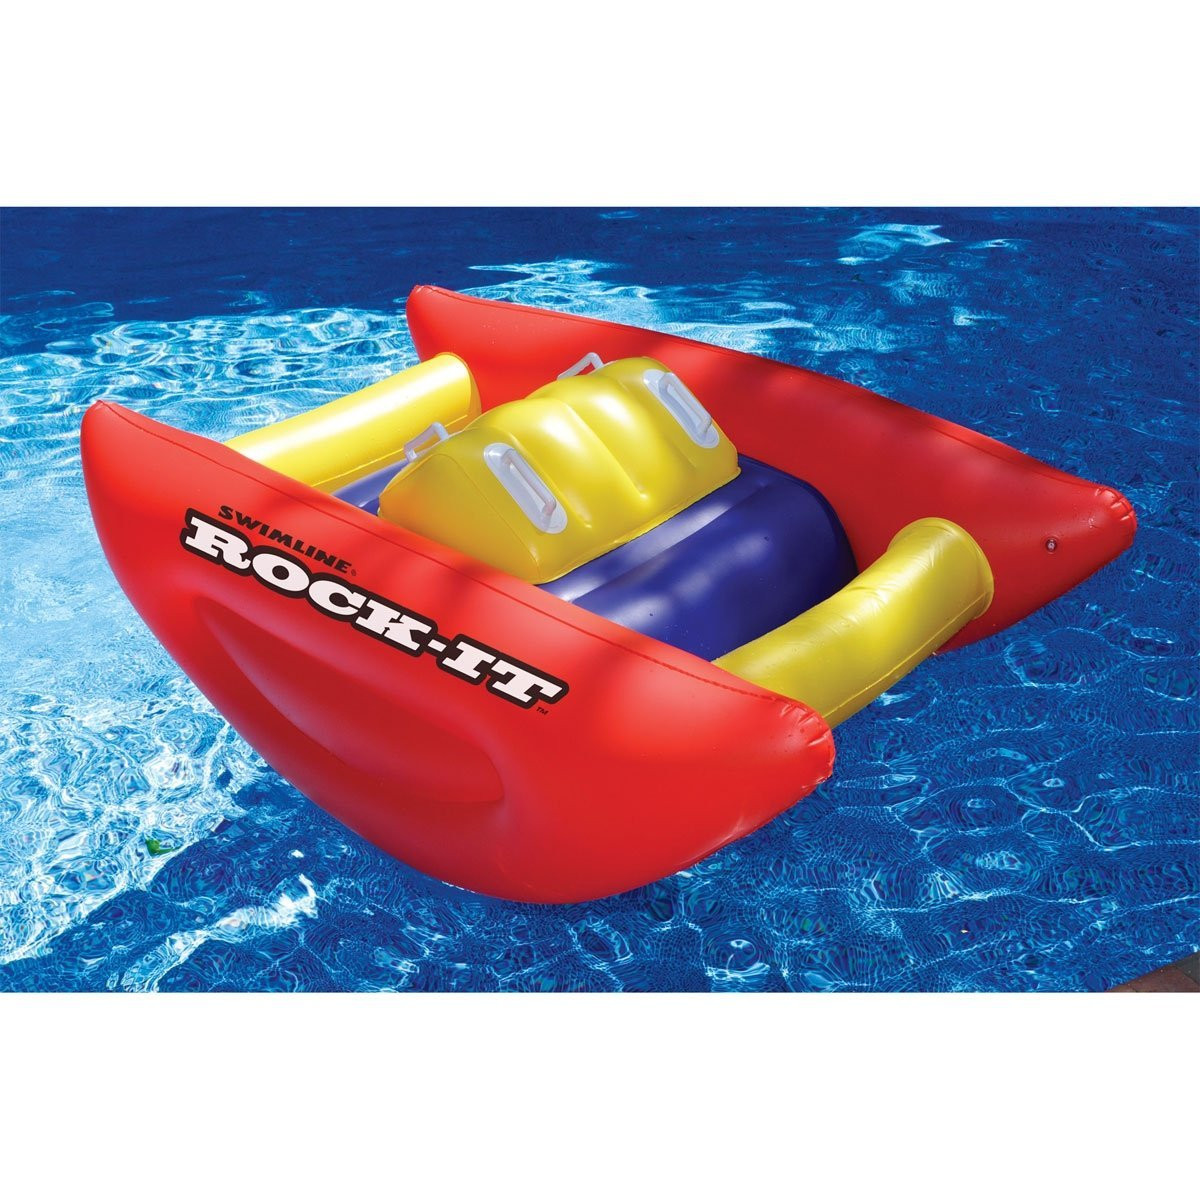 Rock-It Pool Lounger (90583)